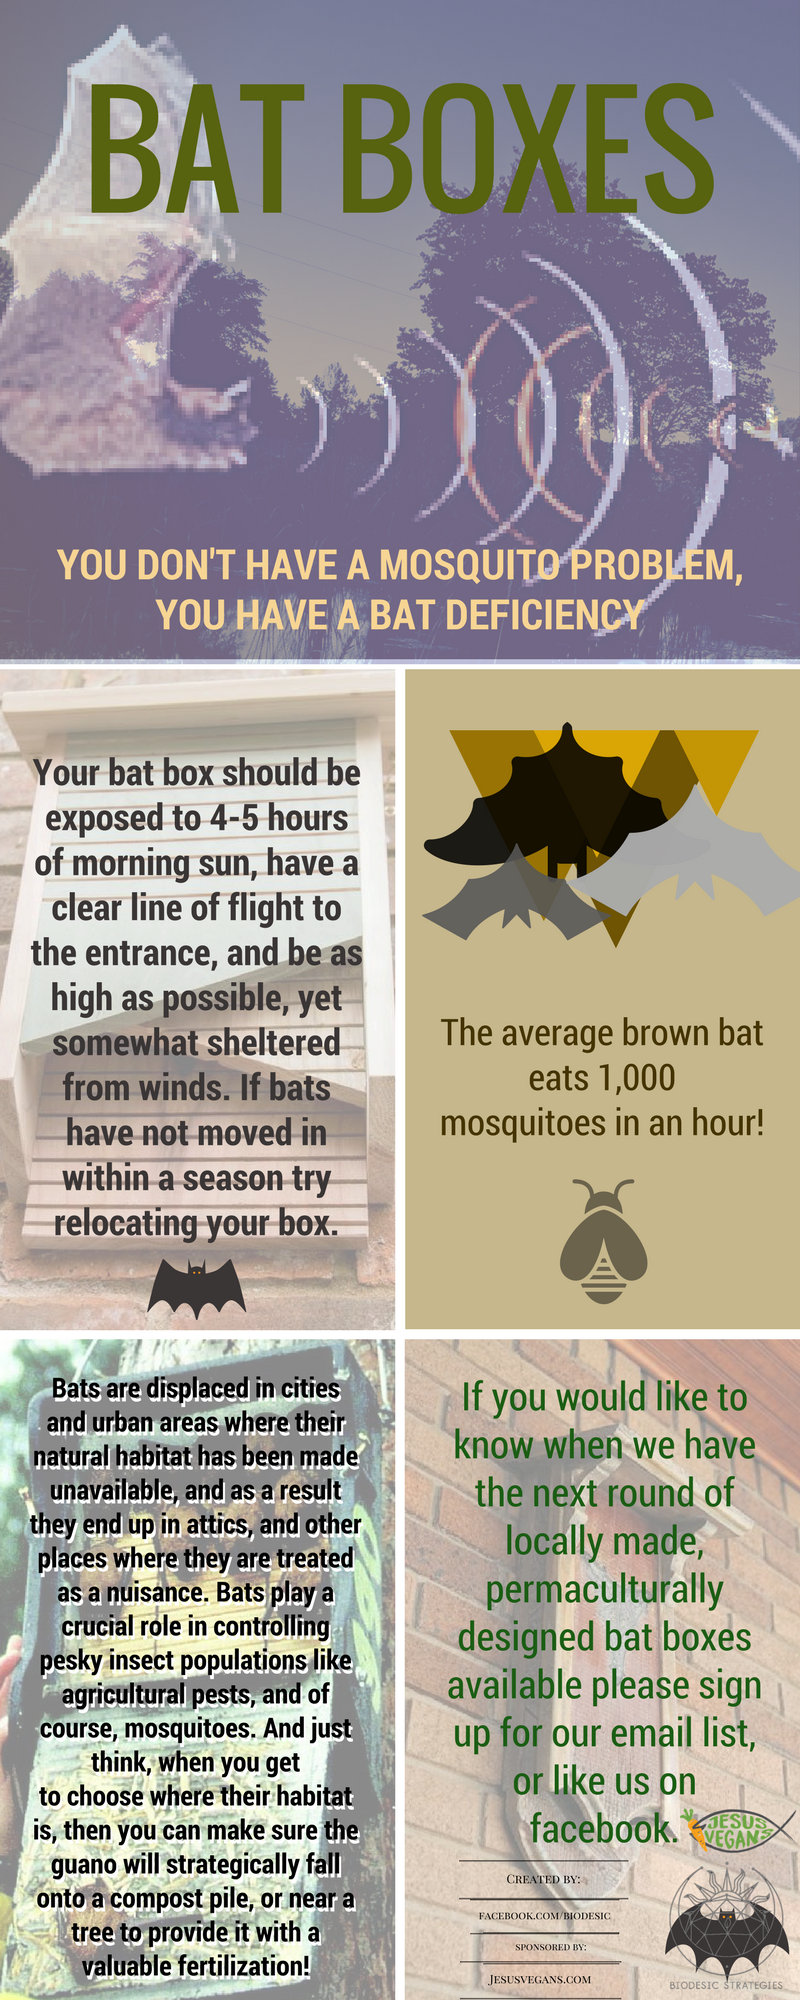 Bat_boxes.png